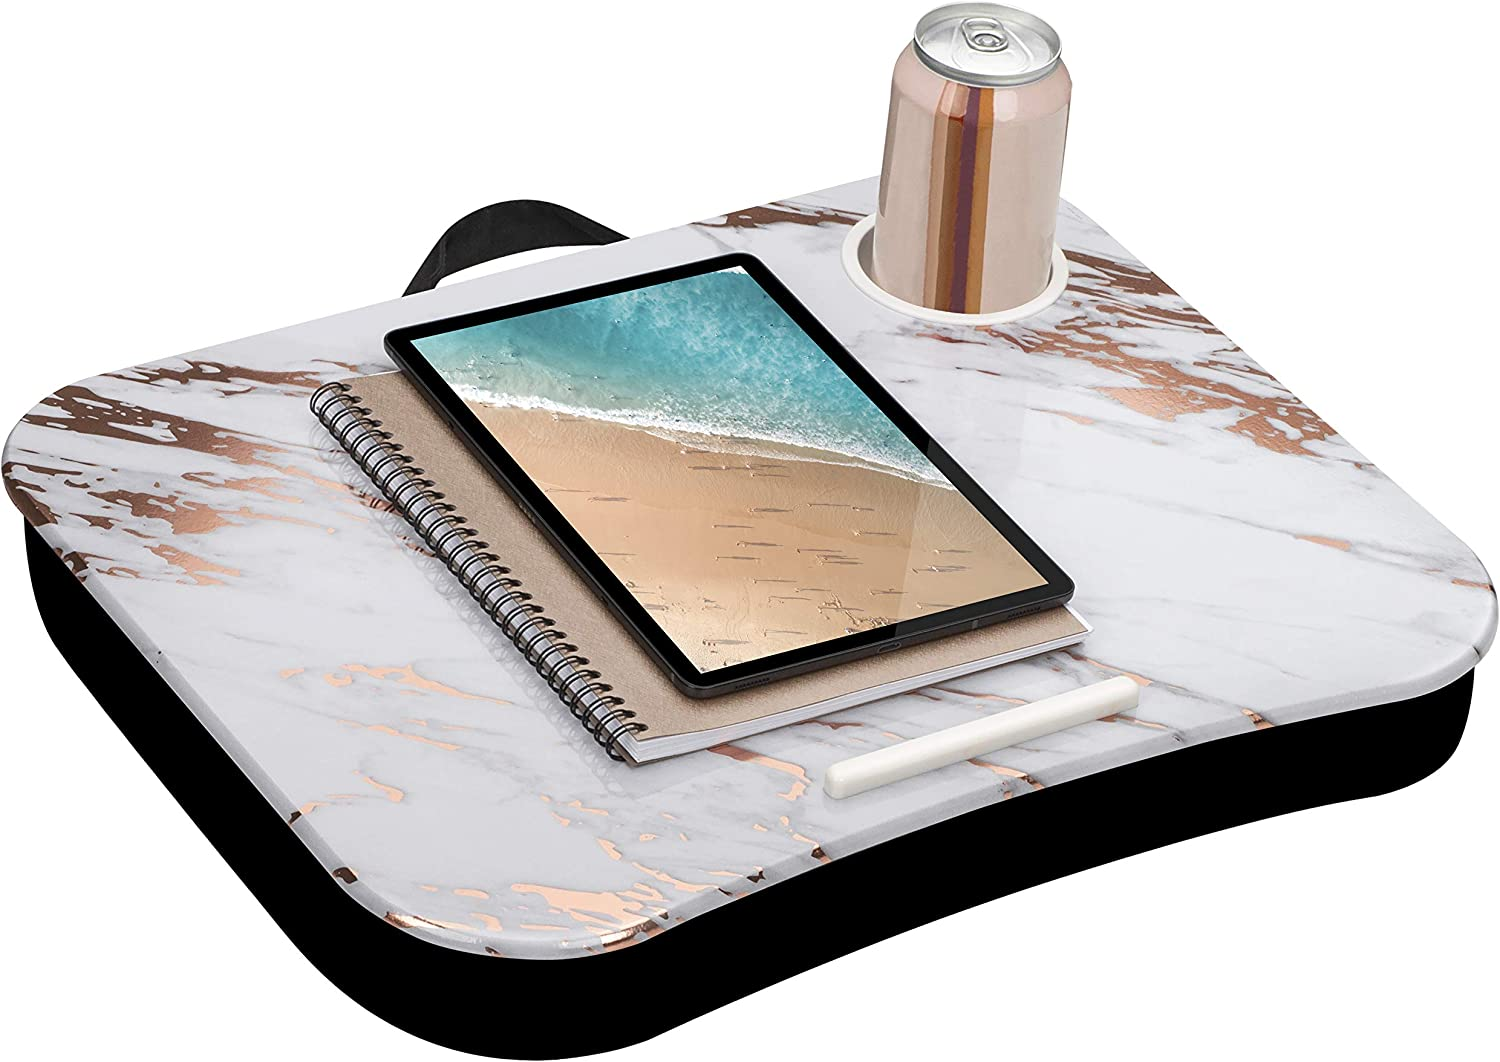 LapGear Cup Holder Lap Desk with Device Ledge - Rose Gold Marble - Fits Up to 15.6 Inch Laptops - Style No. 46310